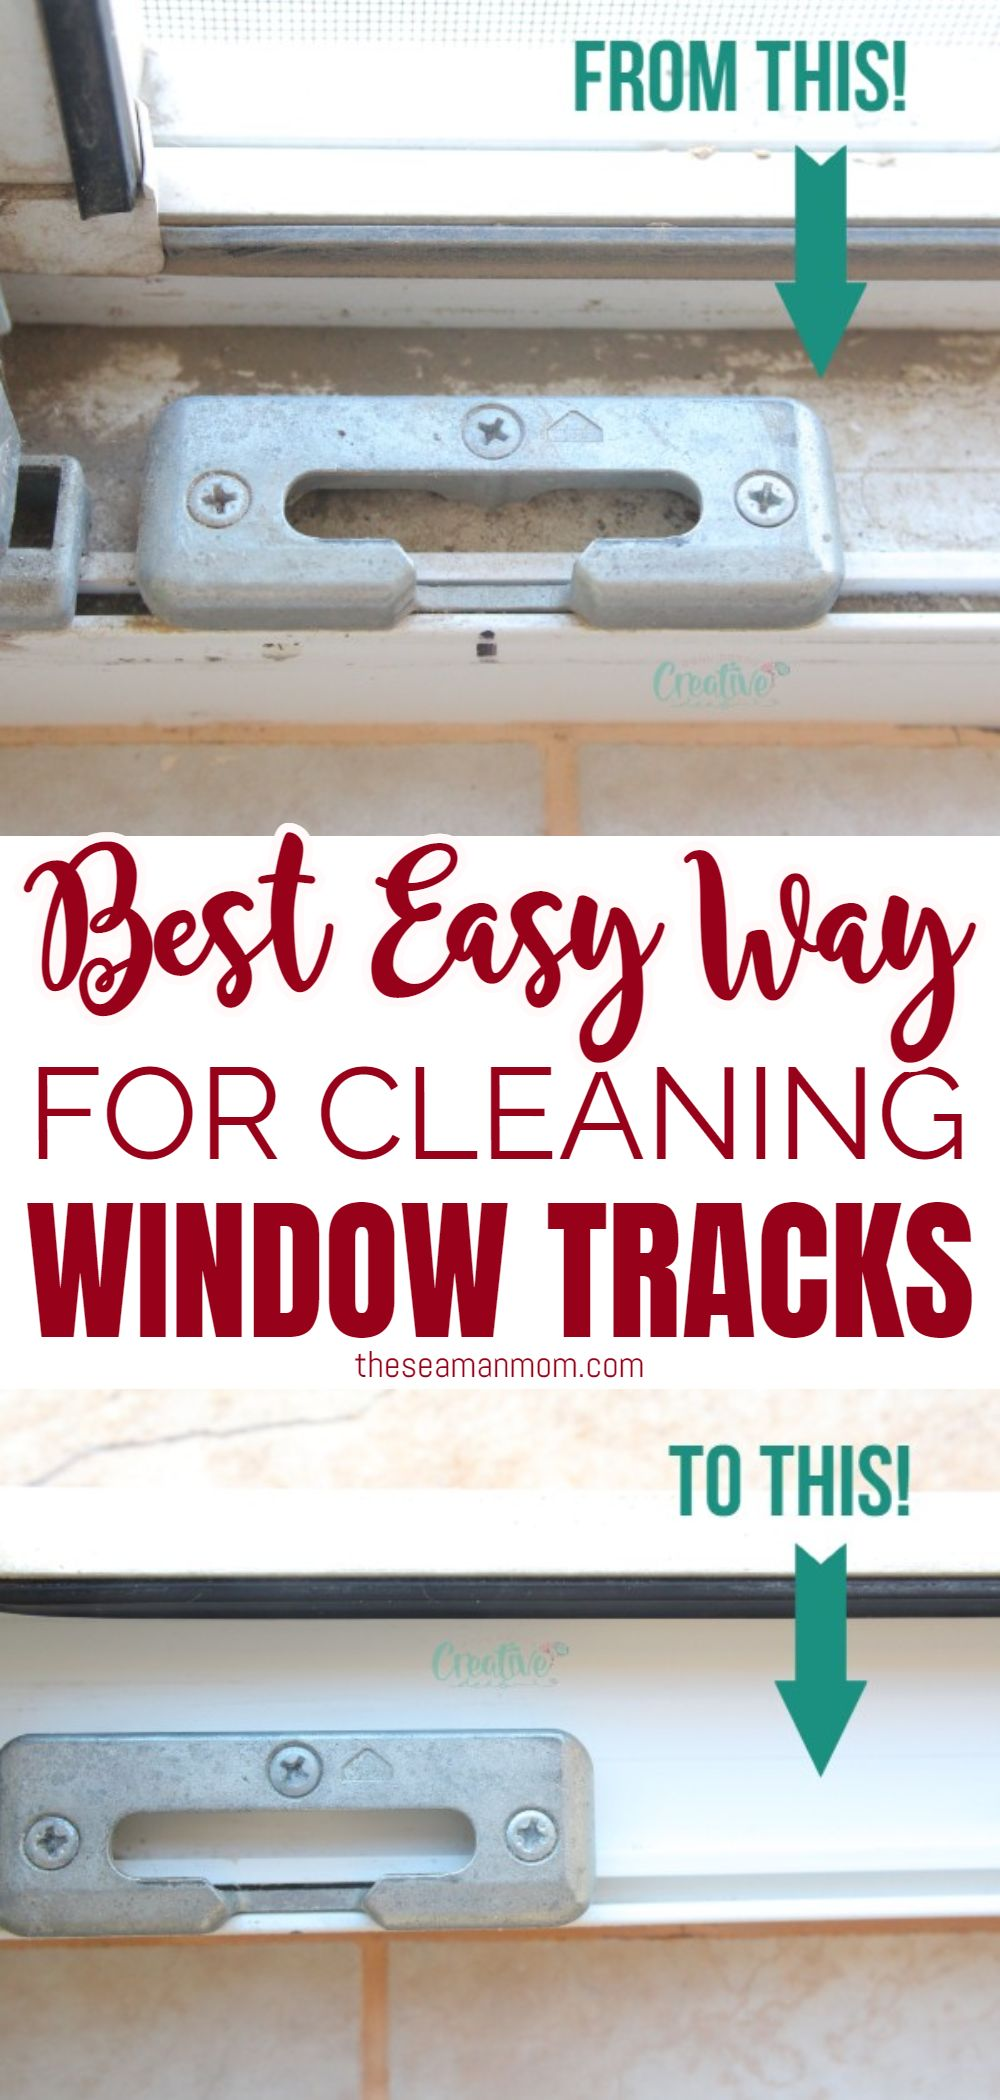 Need a quick, painless and easy method for cleaning window tracks? Here are some simple but effective tricks for how to clean window tracks that will help you get the job done in no time! via @petroneagu